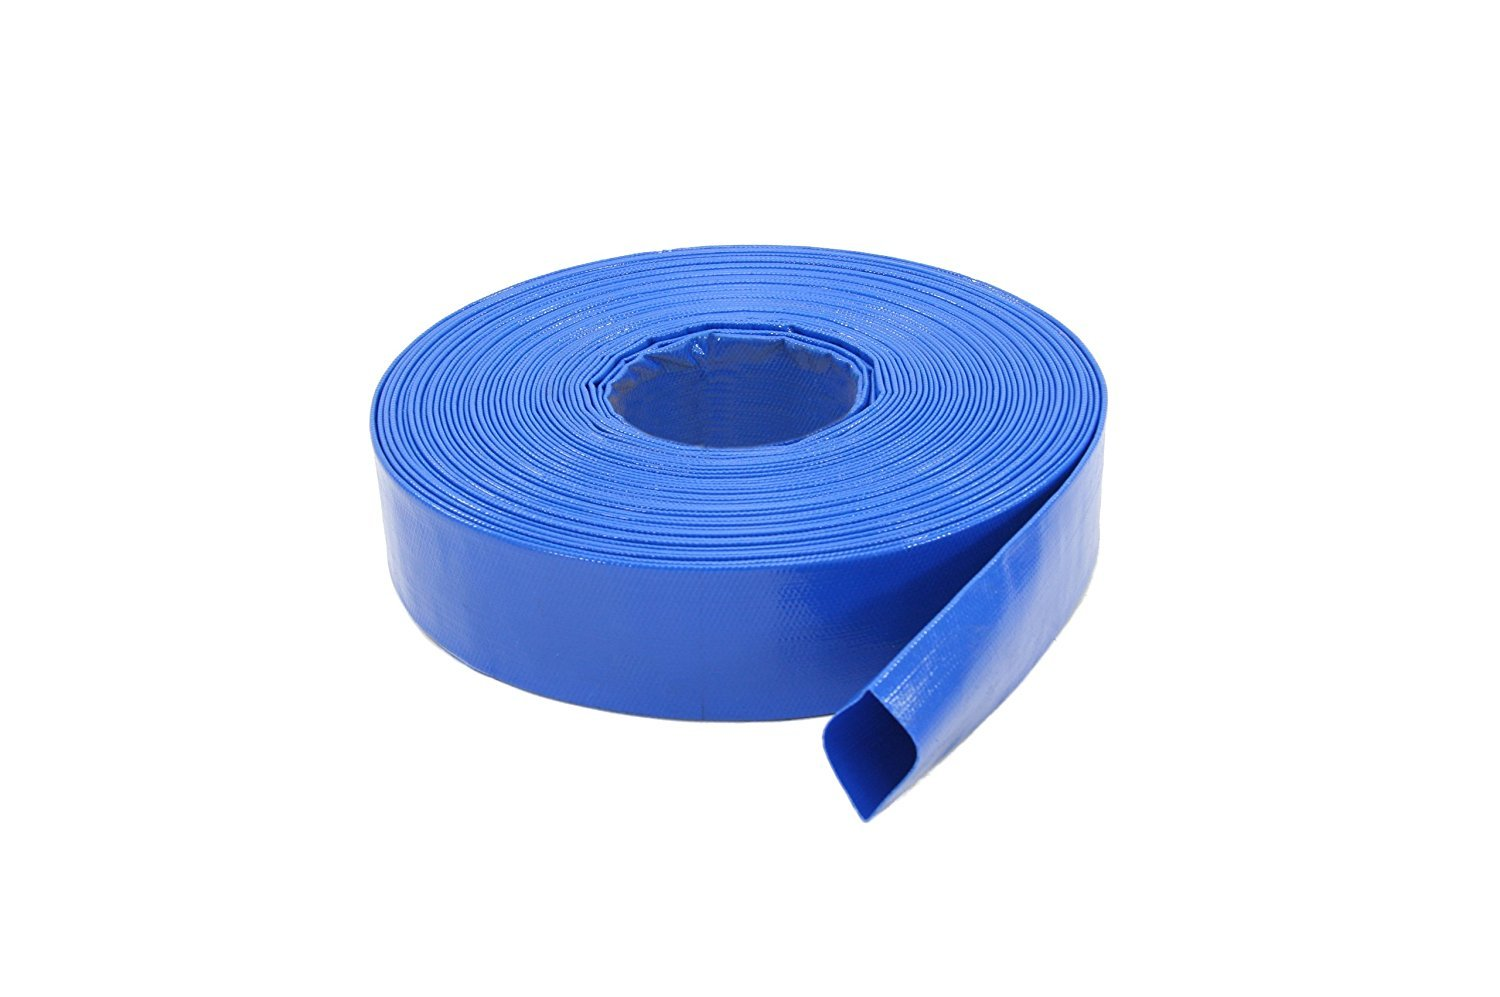 Abbott Rubber 1147-2000-100FT General Purpose Reinforced PVC Lay-Flat Water Discharge Hose, 2-Inch by 100-Feet, Blue